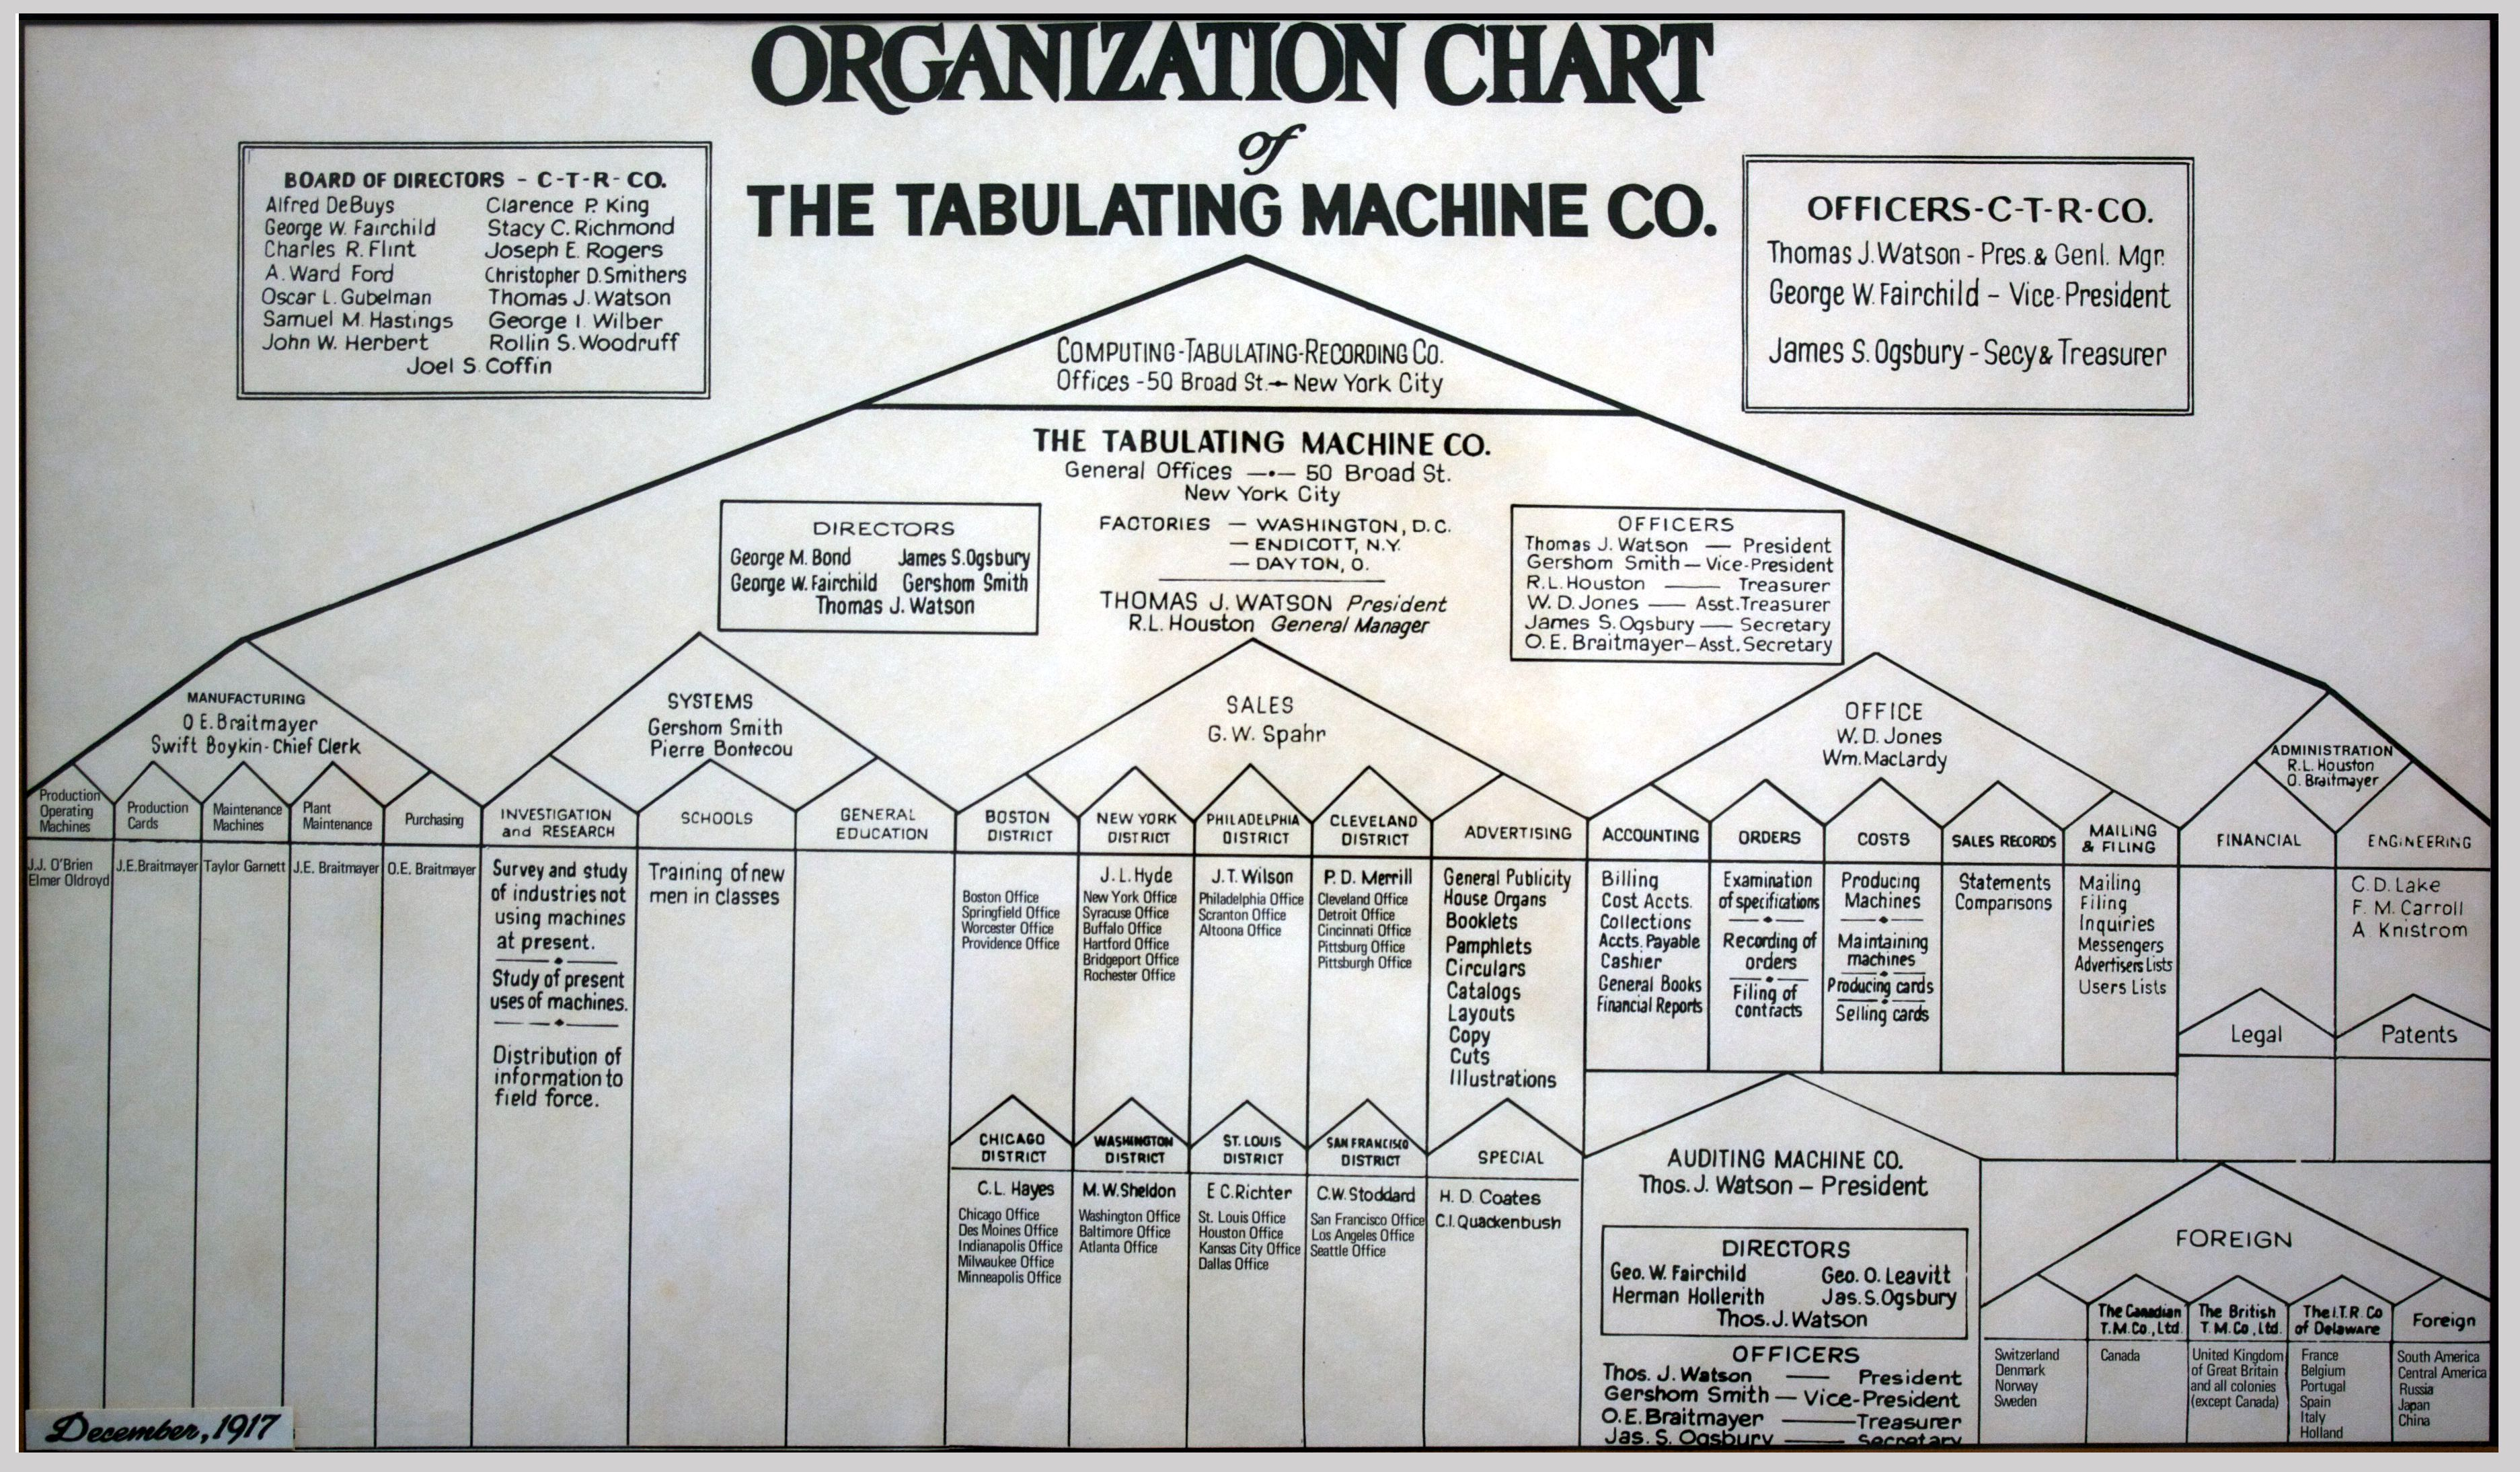 Organizational Chart For Word: Tabulating Machine Co Organization Chart.jpg - Wikimedia Commons,Chart